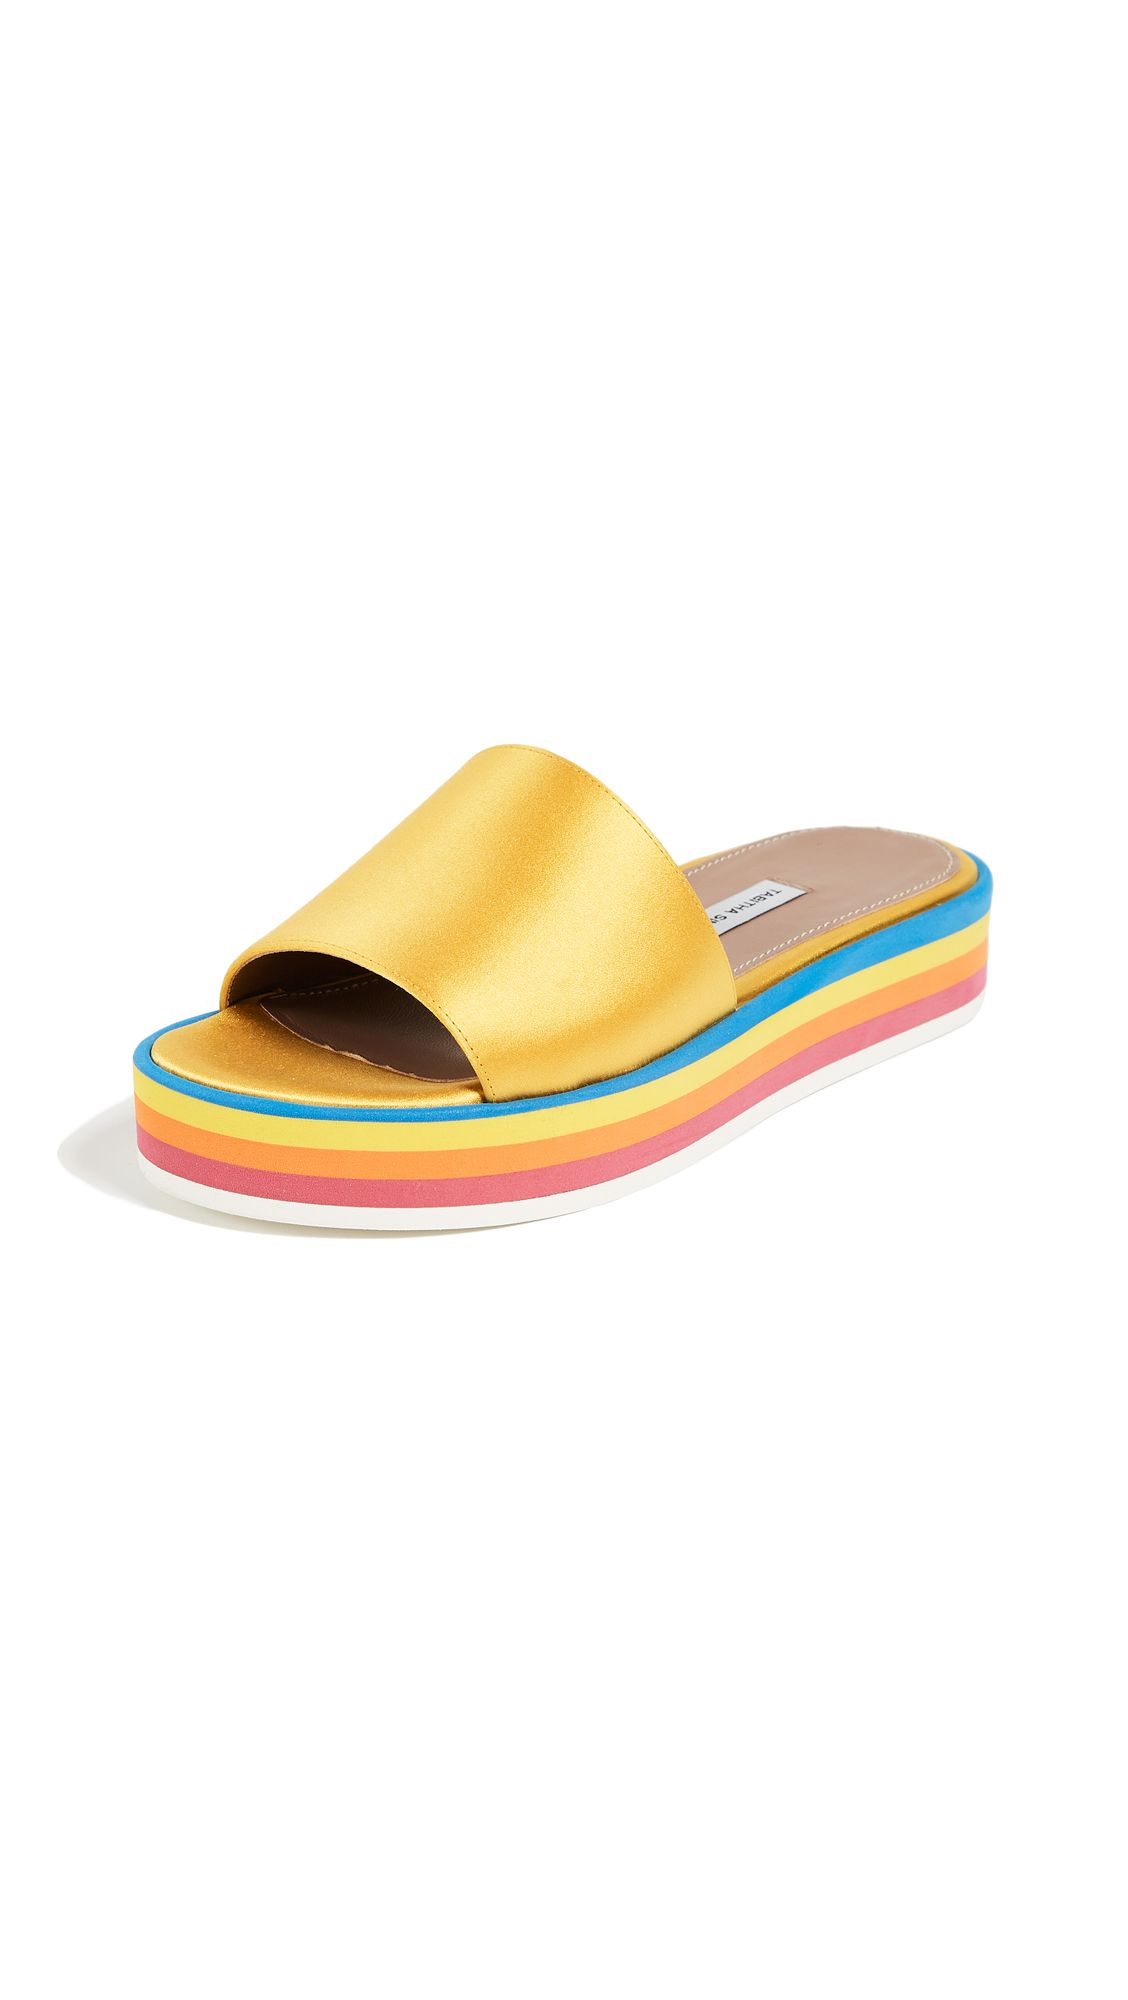 Cheapest Cheap Online Sale Explore Tabitha Simmons Women's Sophia Platform Slide Sandals Outlet Reliable Cheap Sale Eastbay vaklkGU